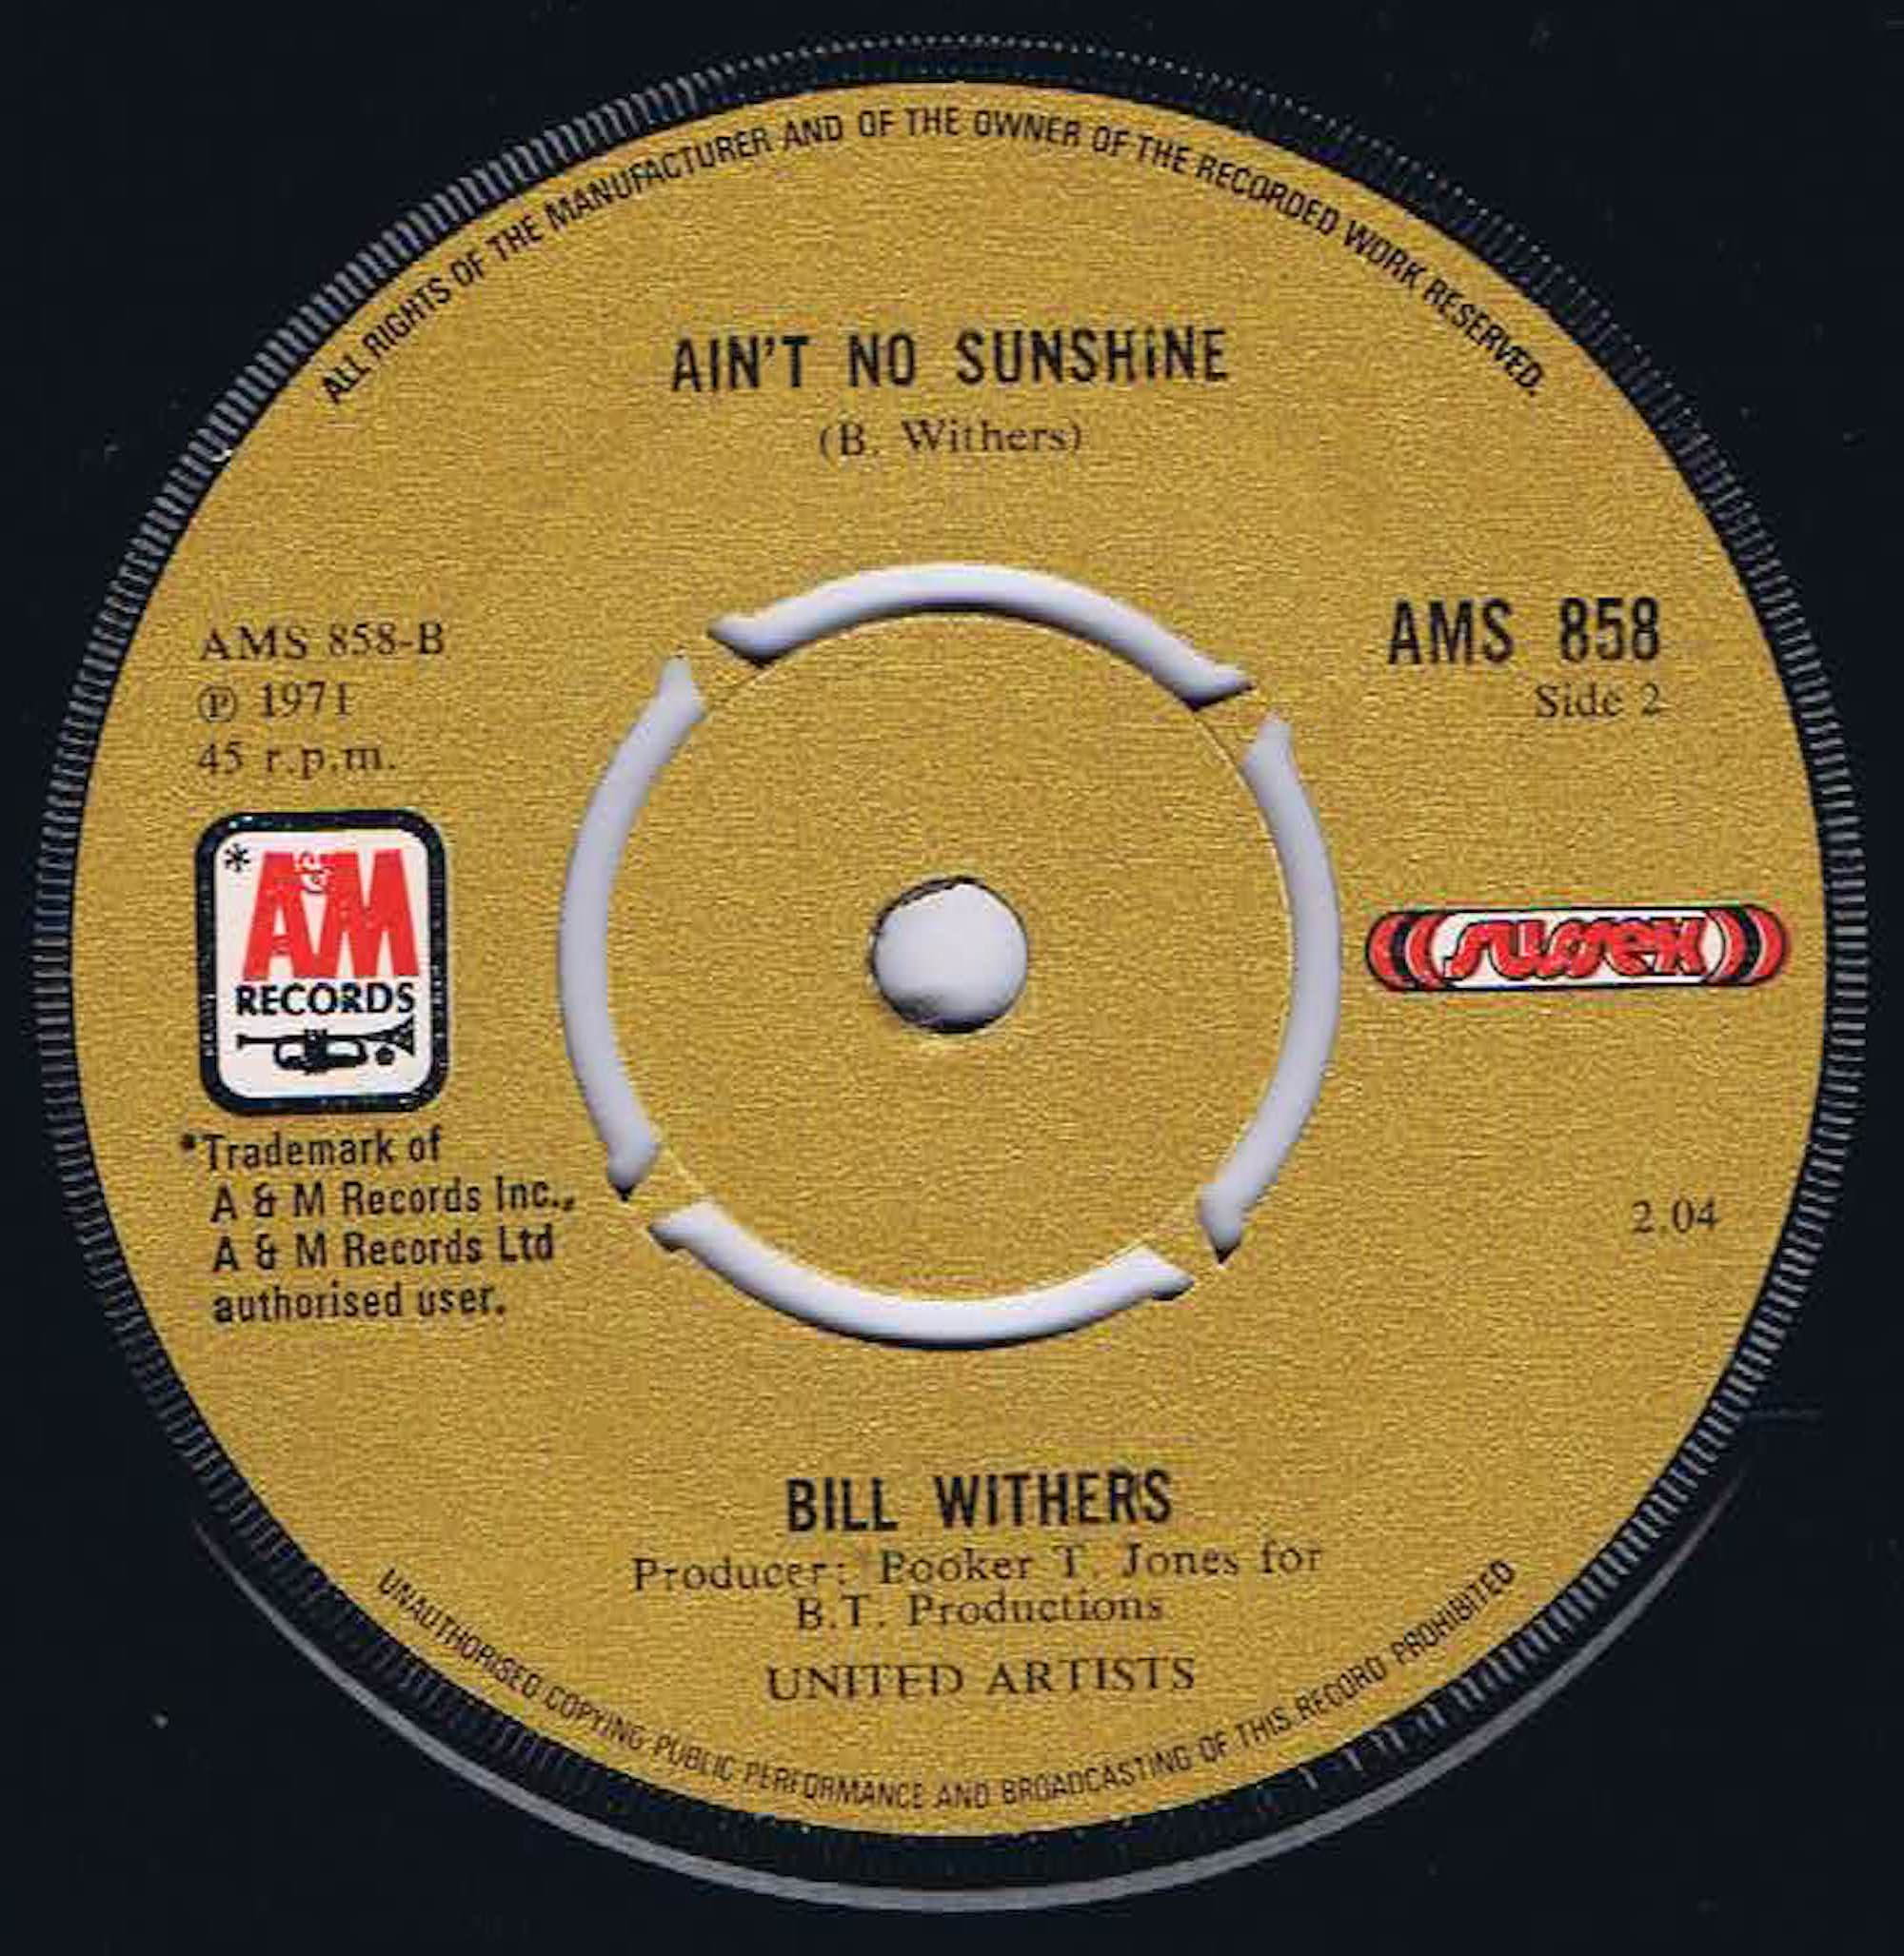 Bill Withers Harlem Ain T No Sunshine Ams 858 7 Inch Vinyl